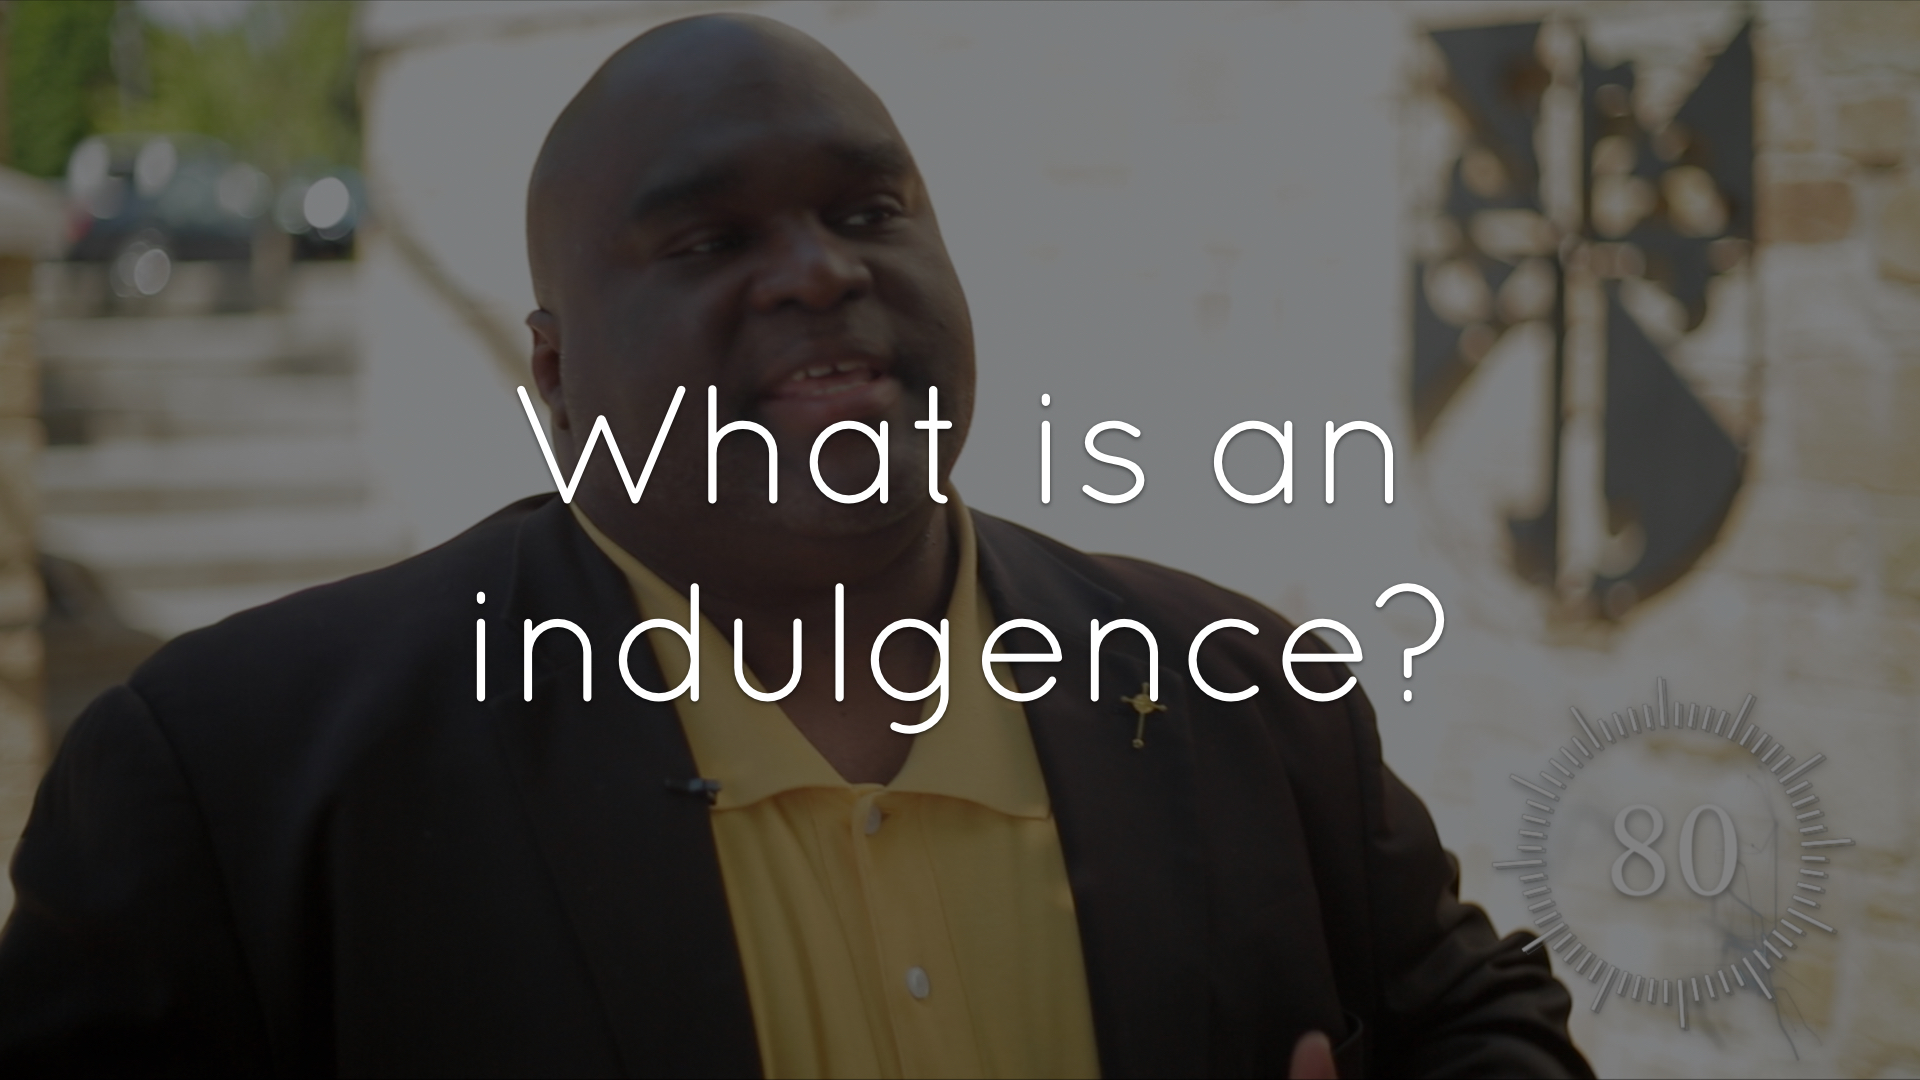 What are indulgences?